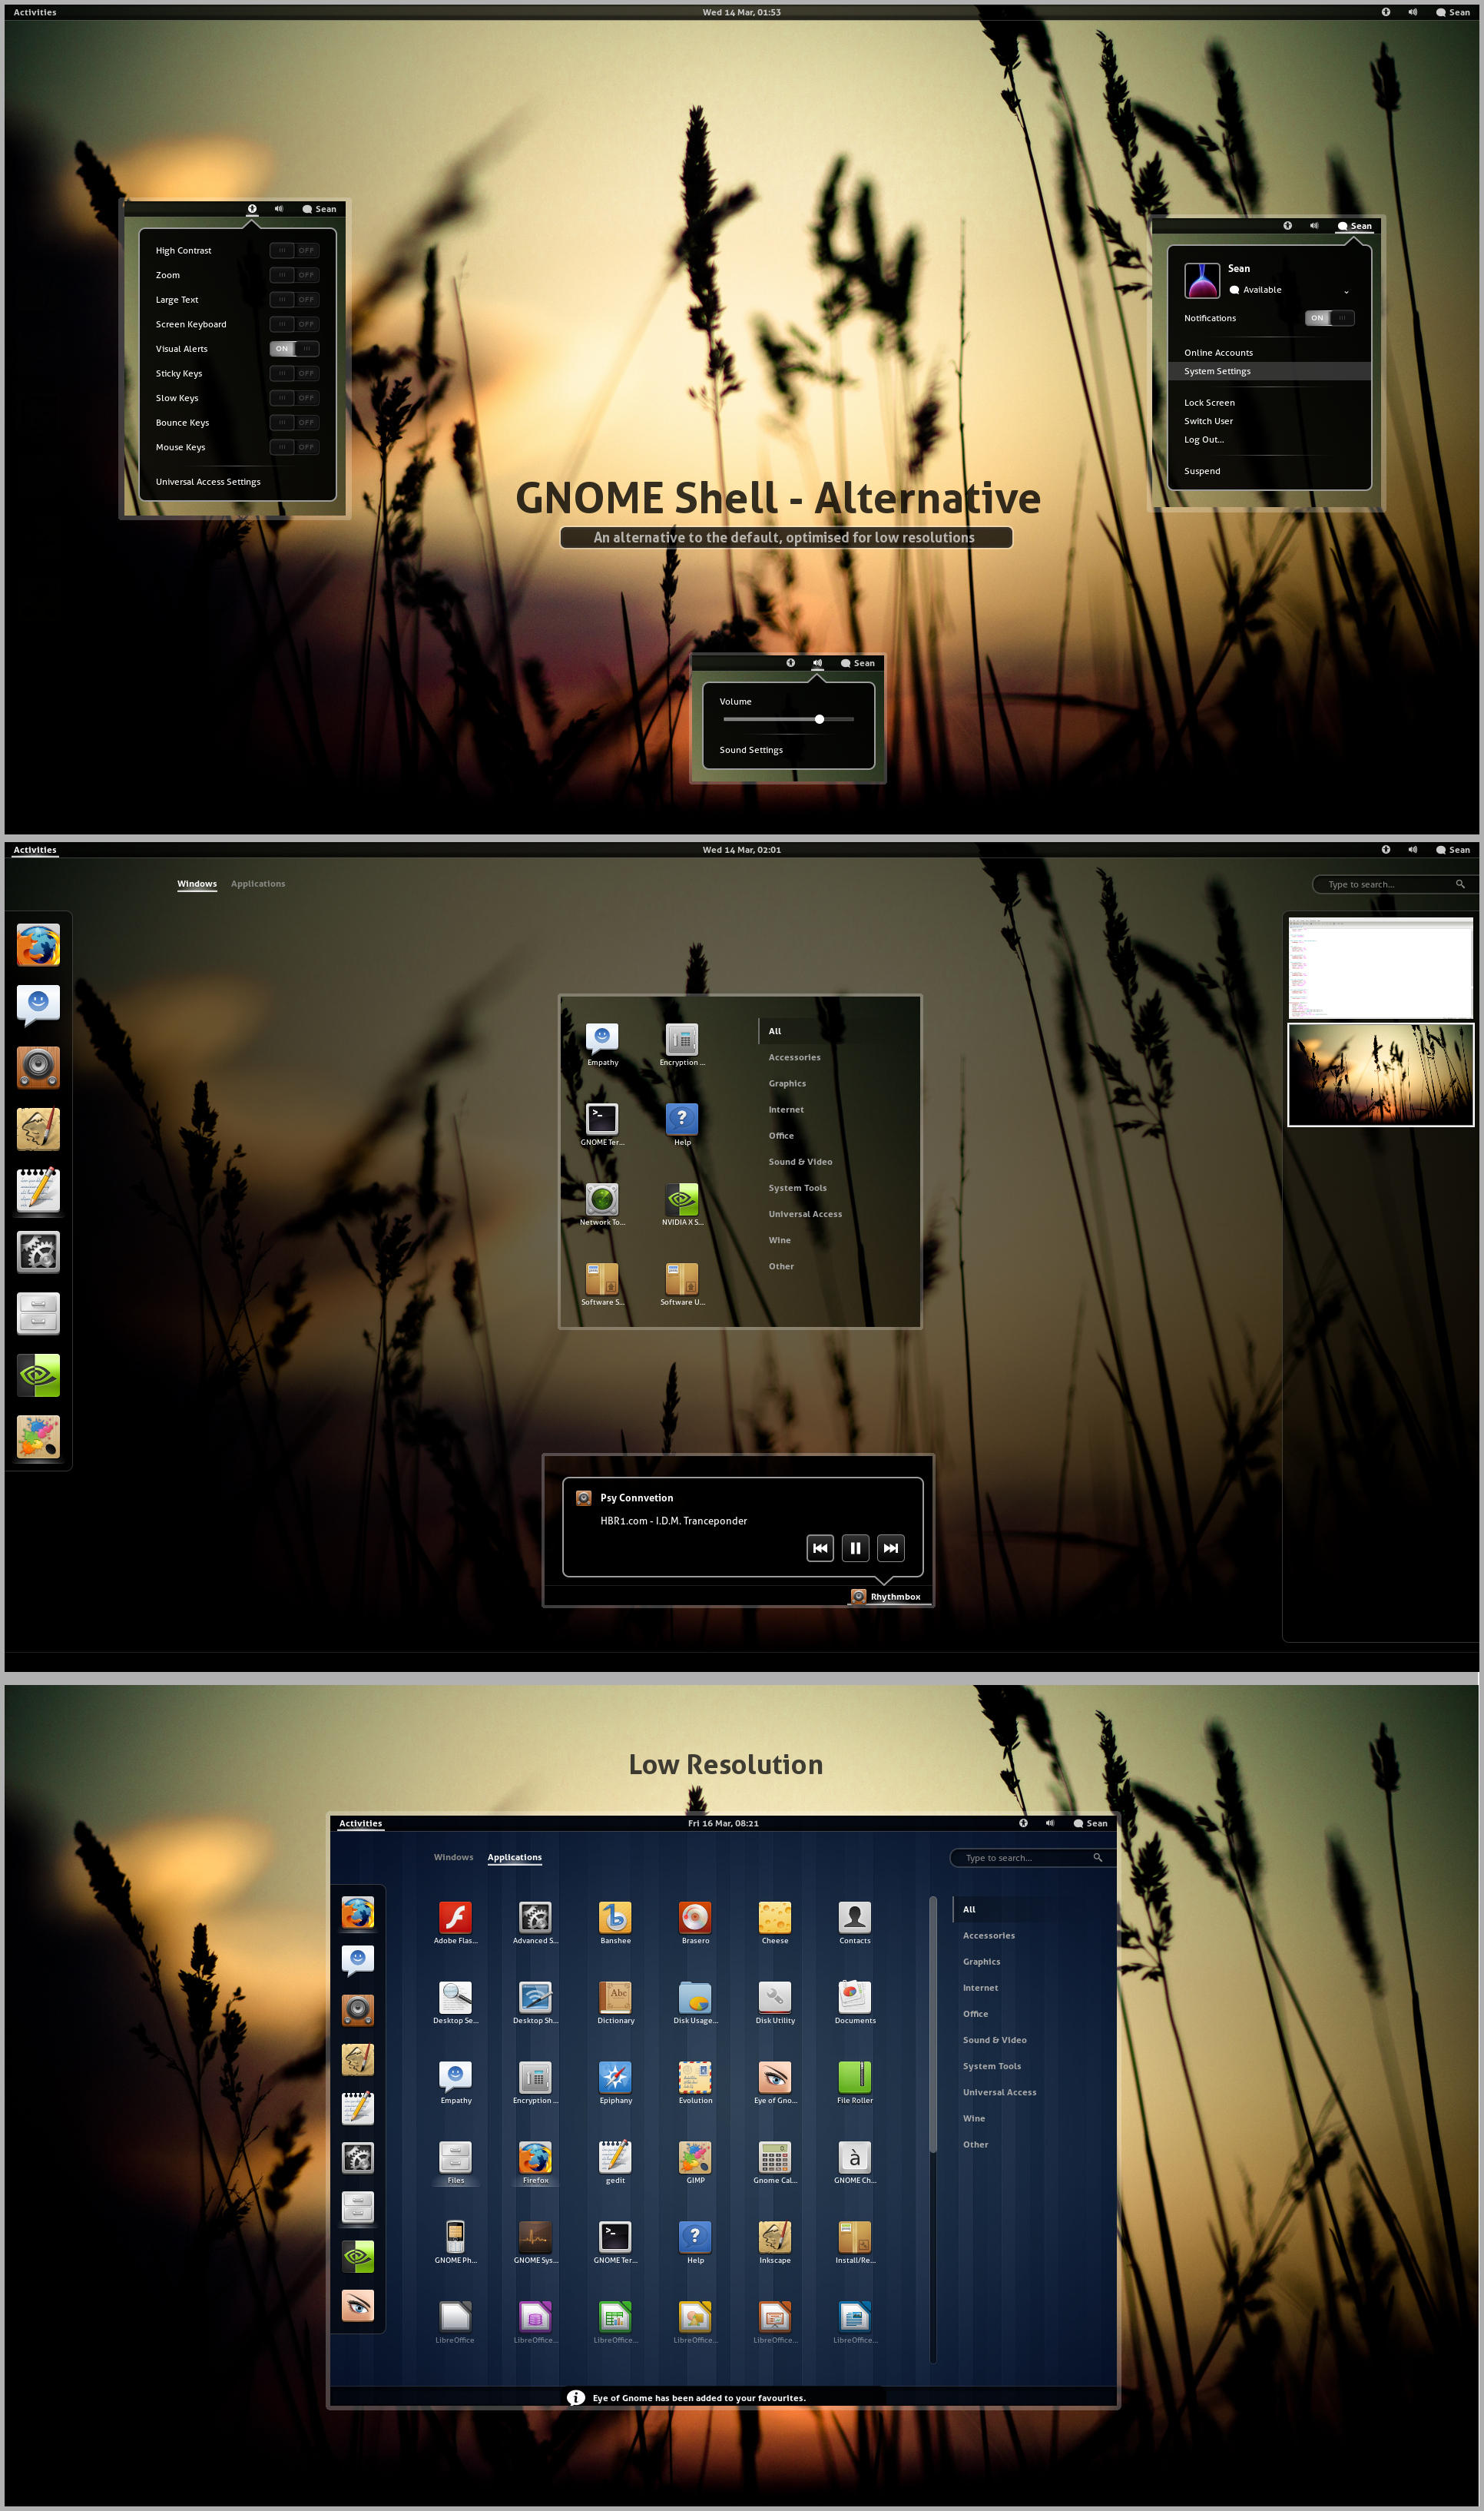 GNOME Shell - Alternative by half-left